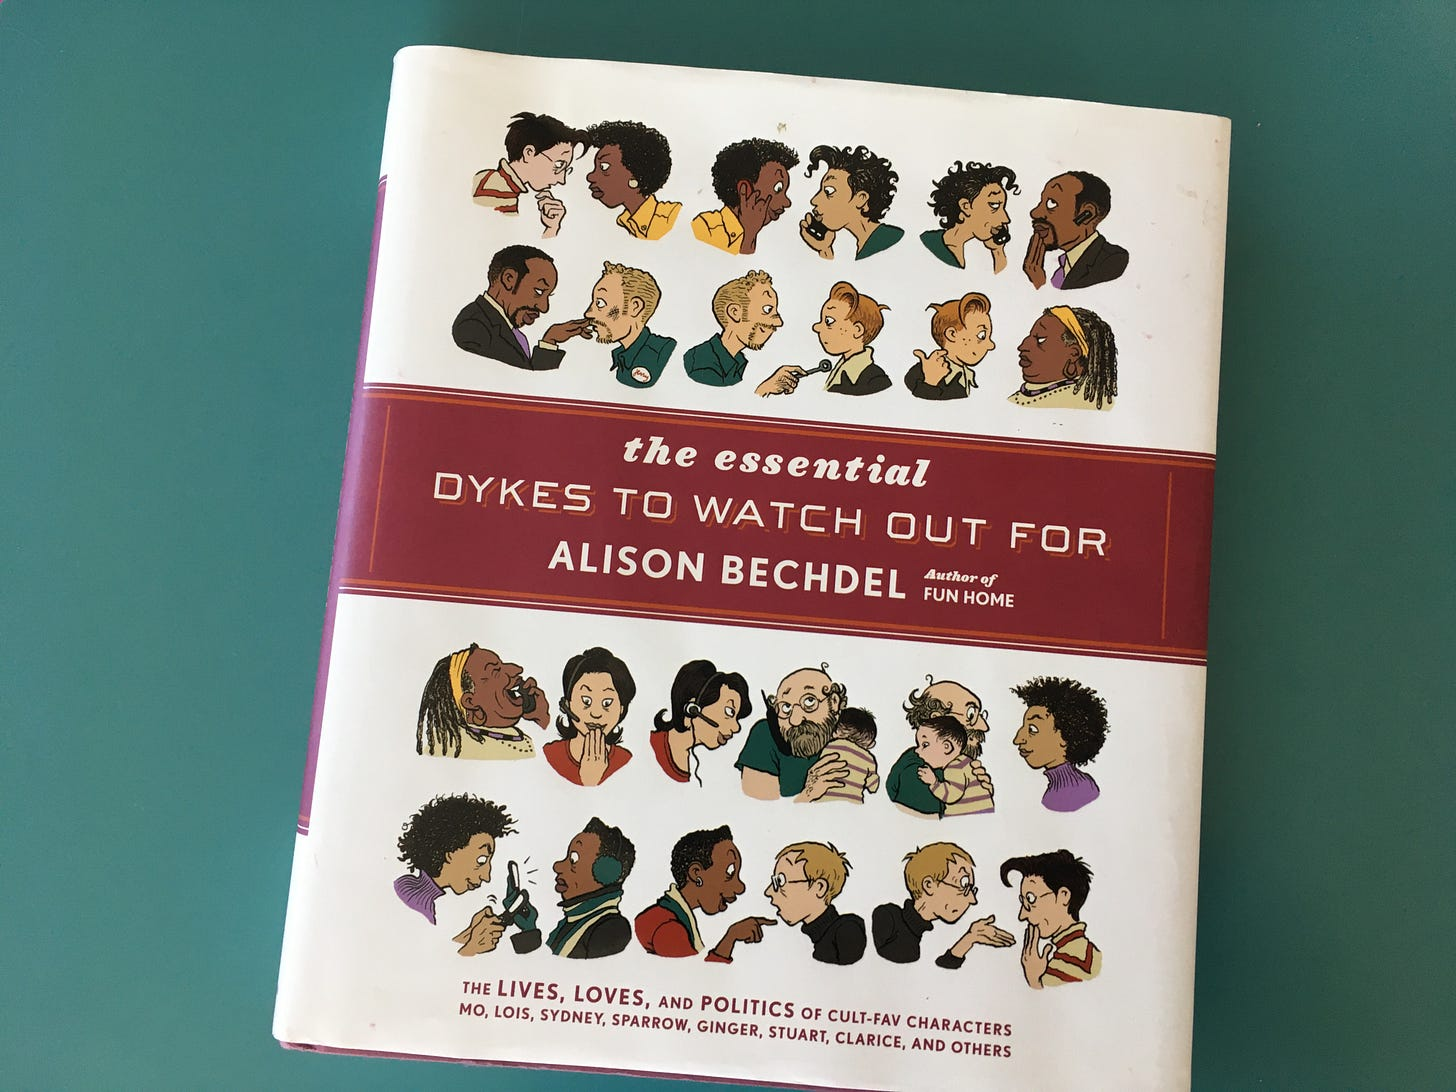 Photo of the hard cover copy of Alison Bechdel's The Essential Dykes to Watch Out For